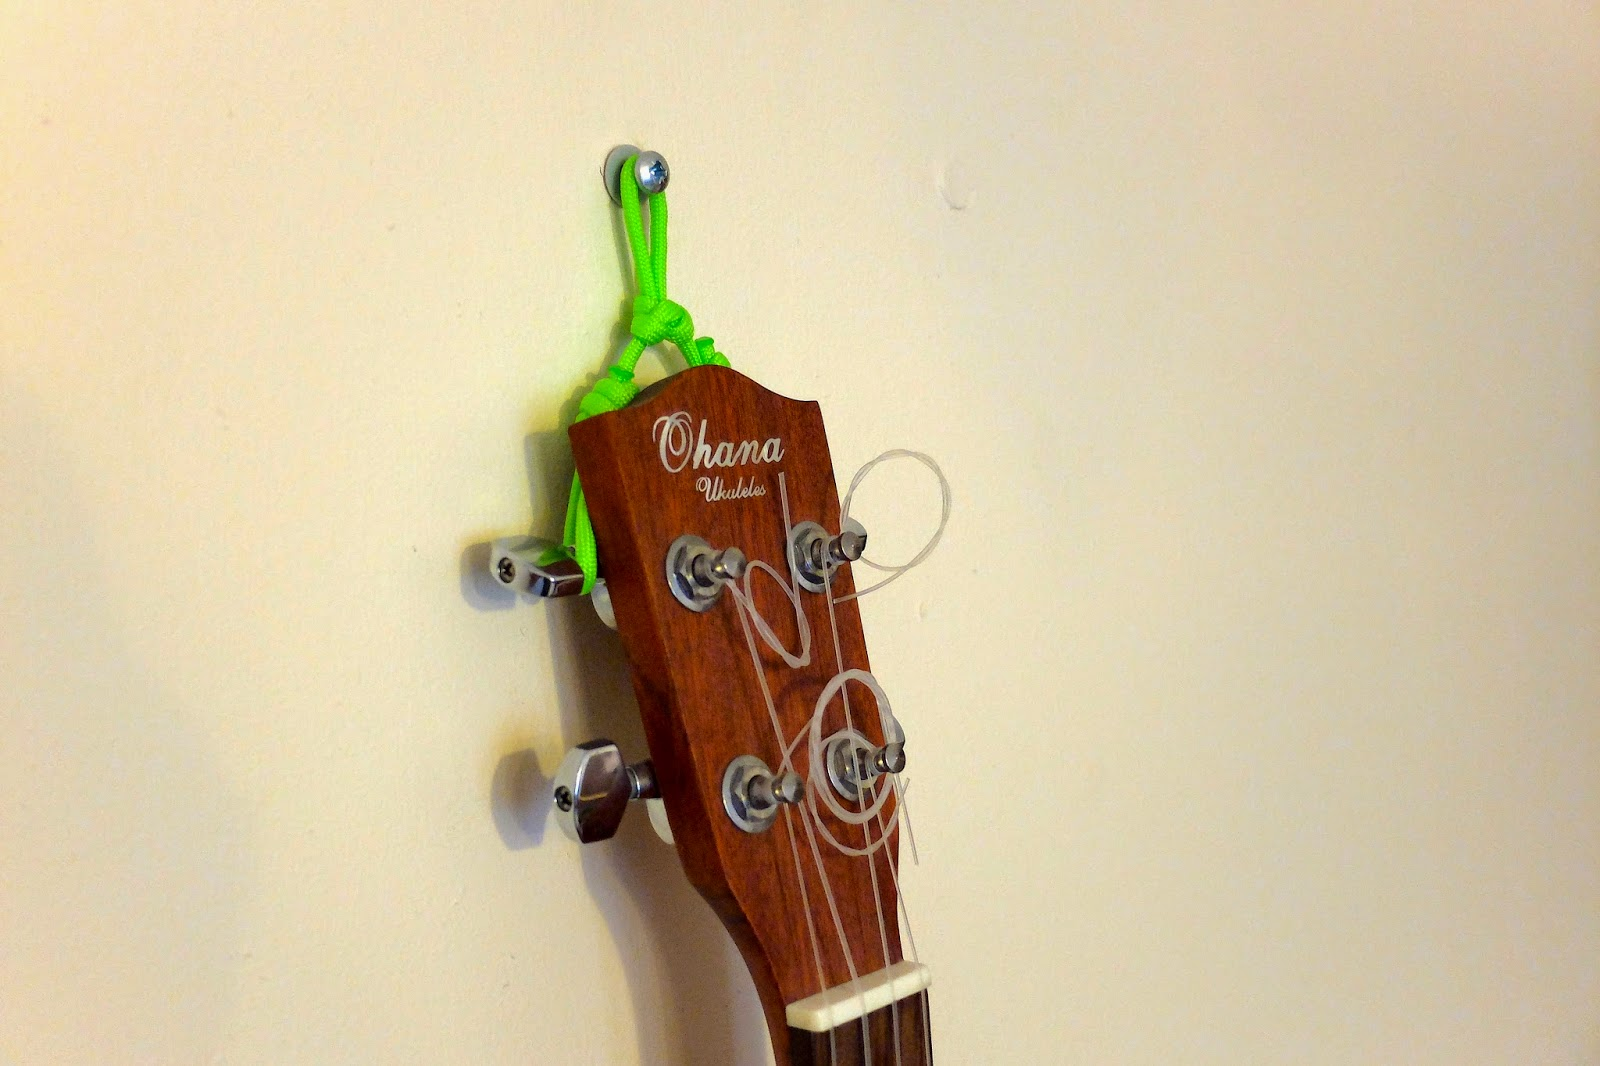 ukulele hanging on wall